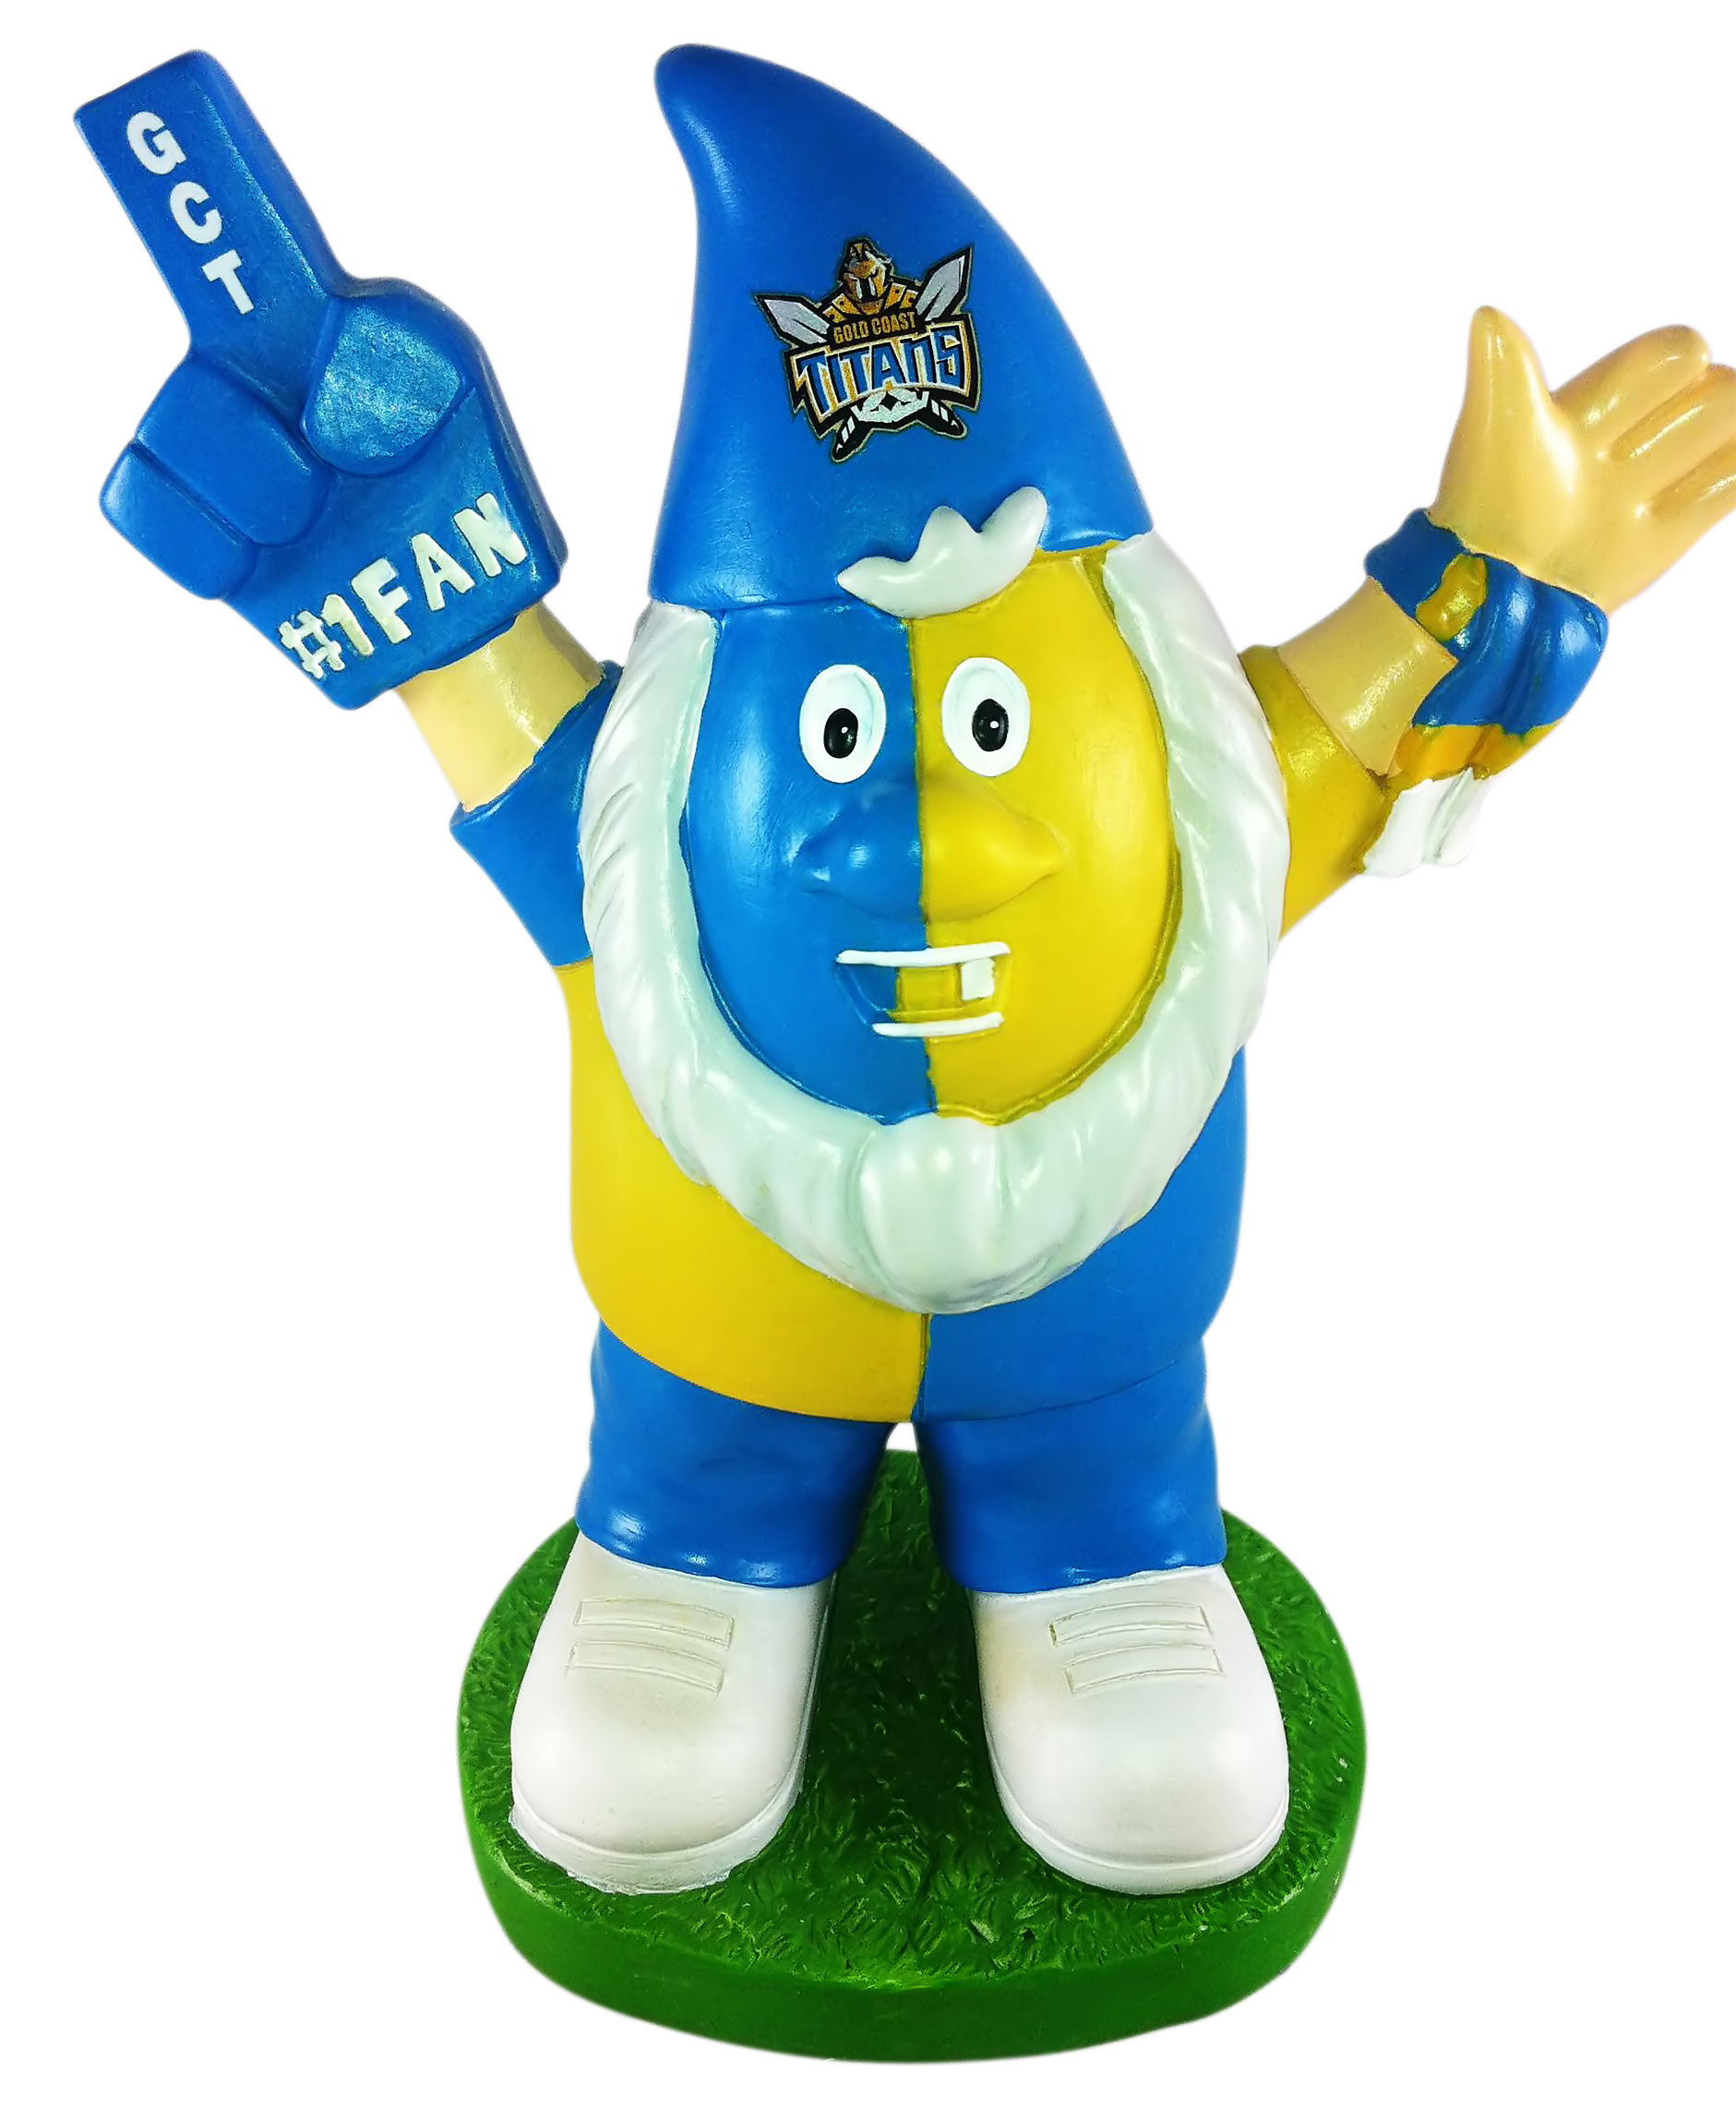 Gold-Coast-Titans-NRL-Supporter-Gnome-Perfect-Size-for-Indoors-or-Outdoors